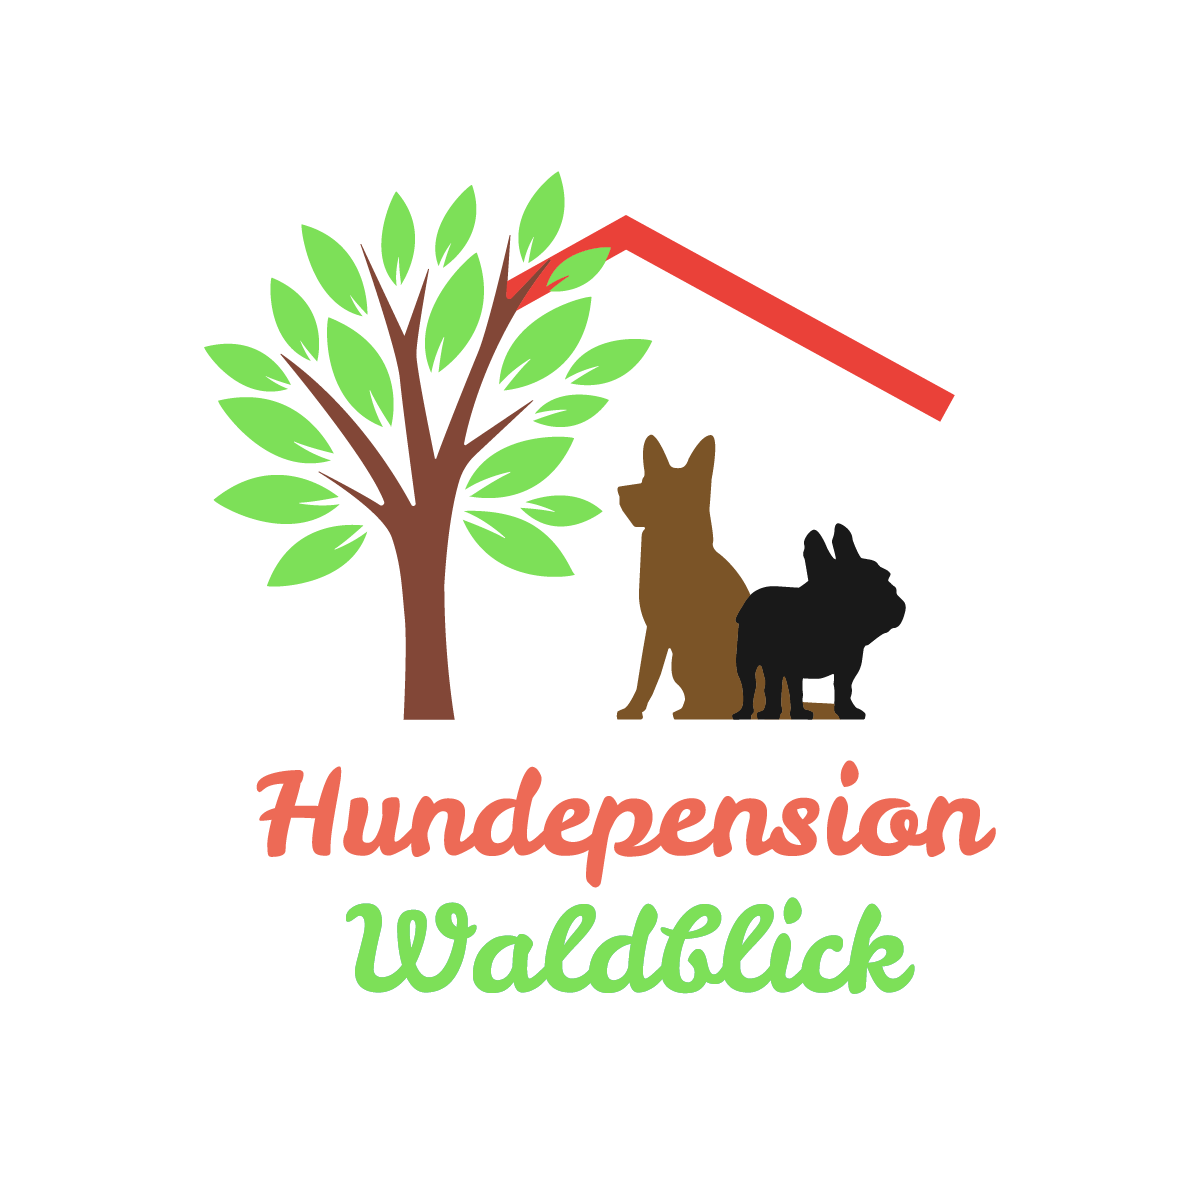 Hundepension Logo